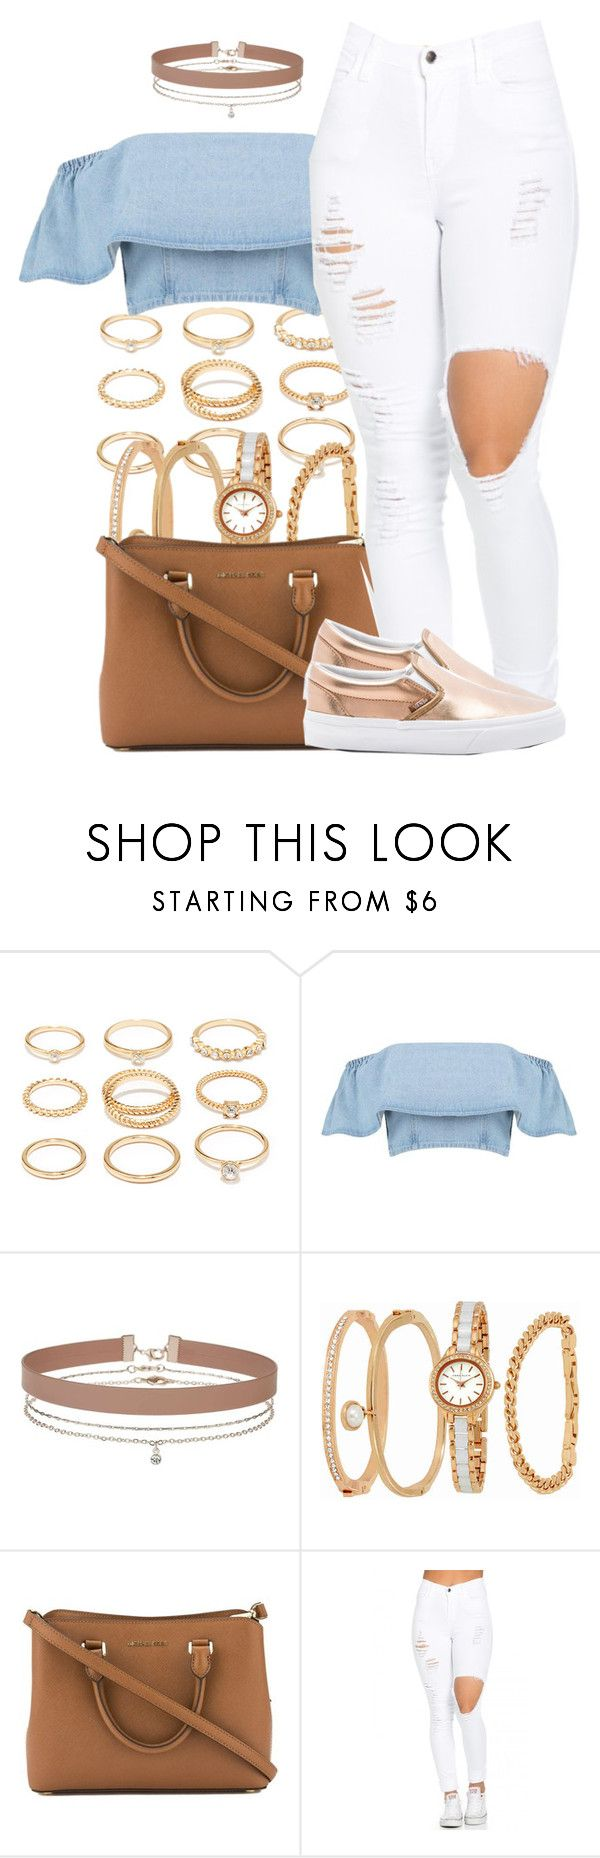 """99"" by trinsowavy ❤ liked on Polyvore featuring Forever 21, Boohoo, Miss Selfridge, Anne Klein, Michael Kors and Vans"